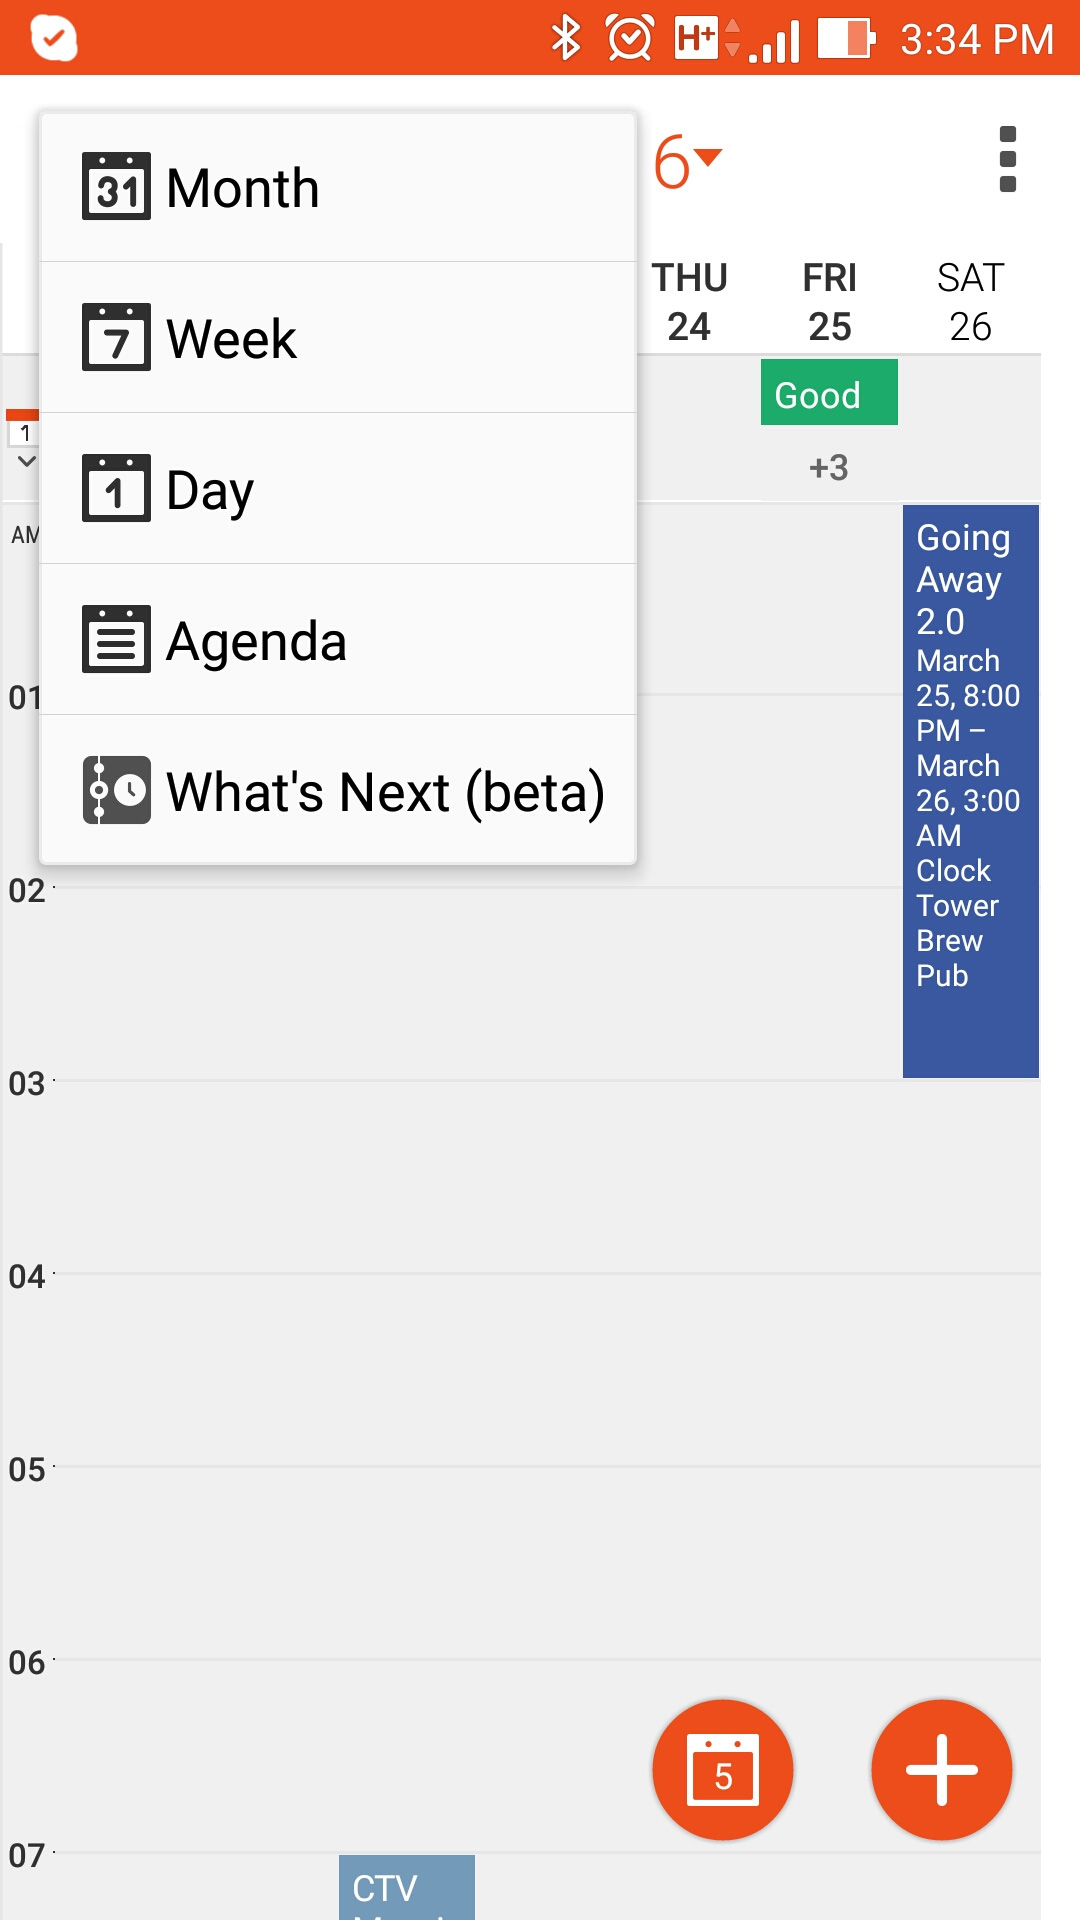 The complete guide to the ASUS Calendar app | Mobile | ASUS Global